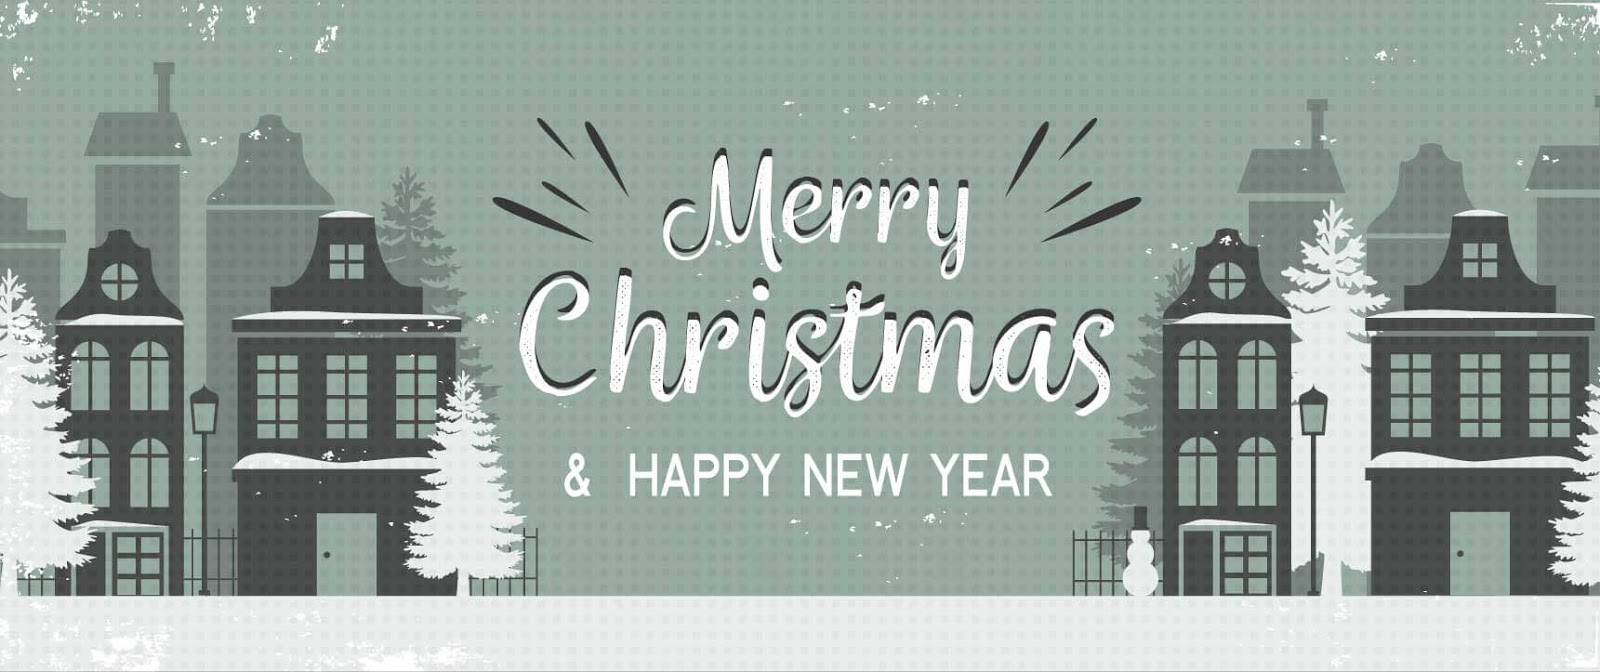 Banner Christmas Download Free